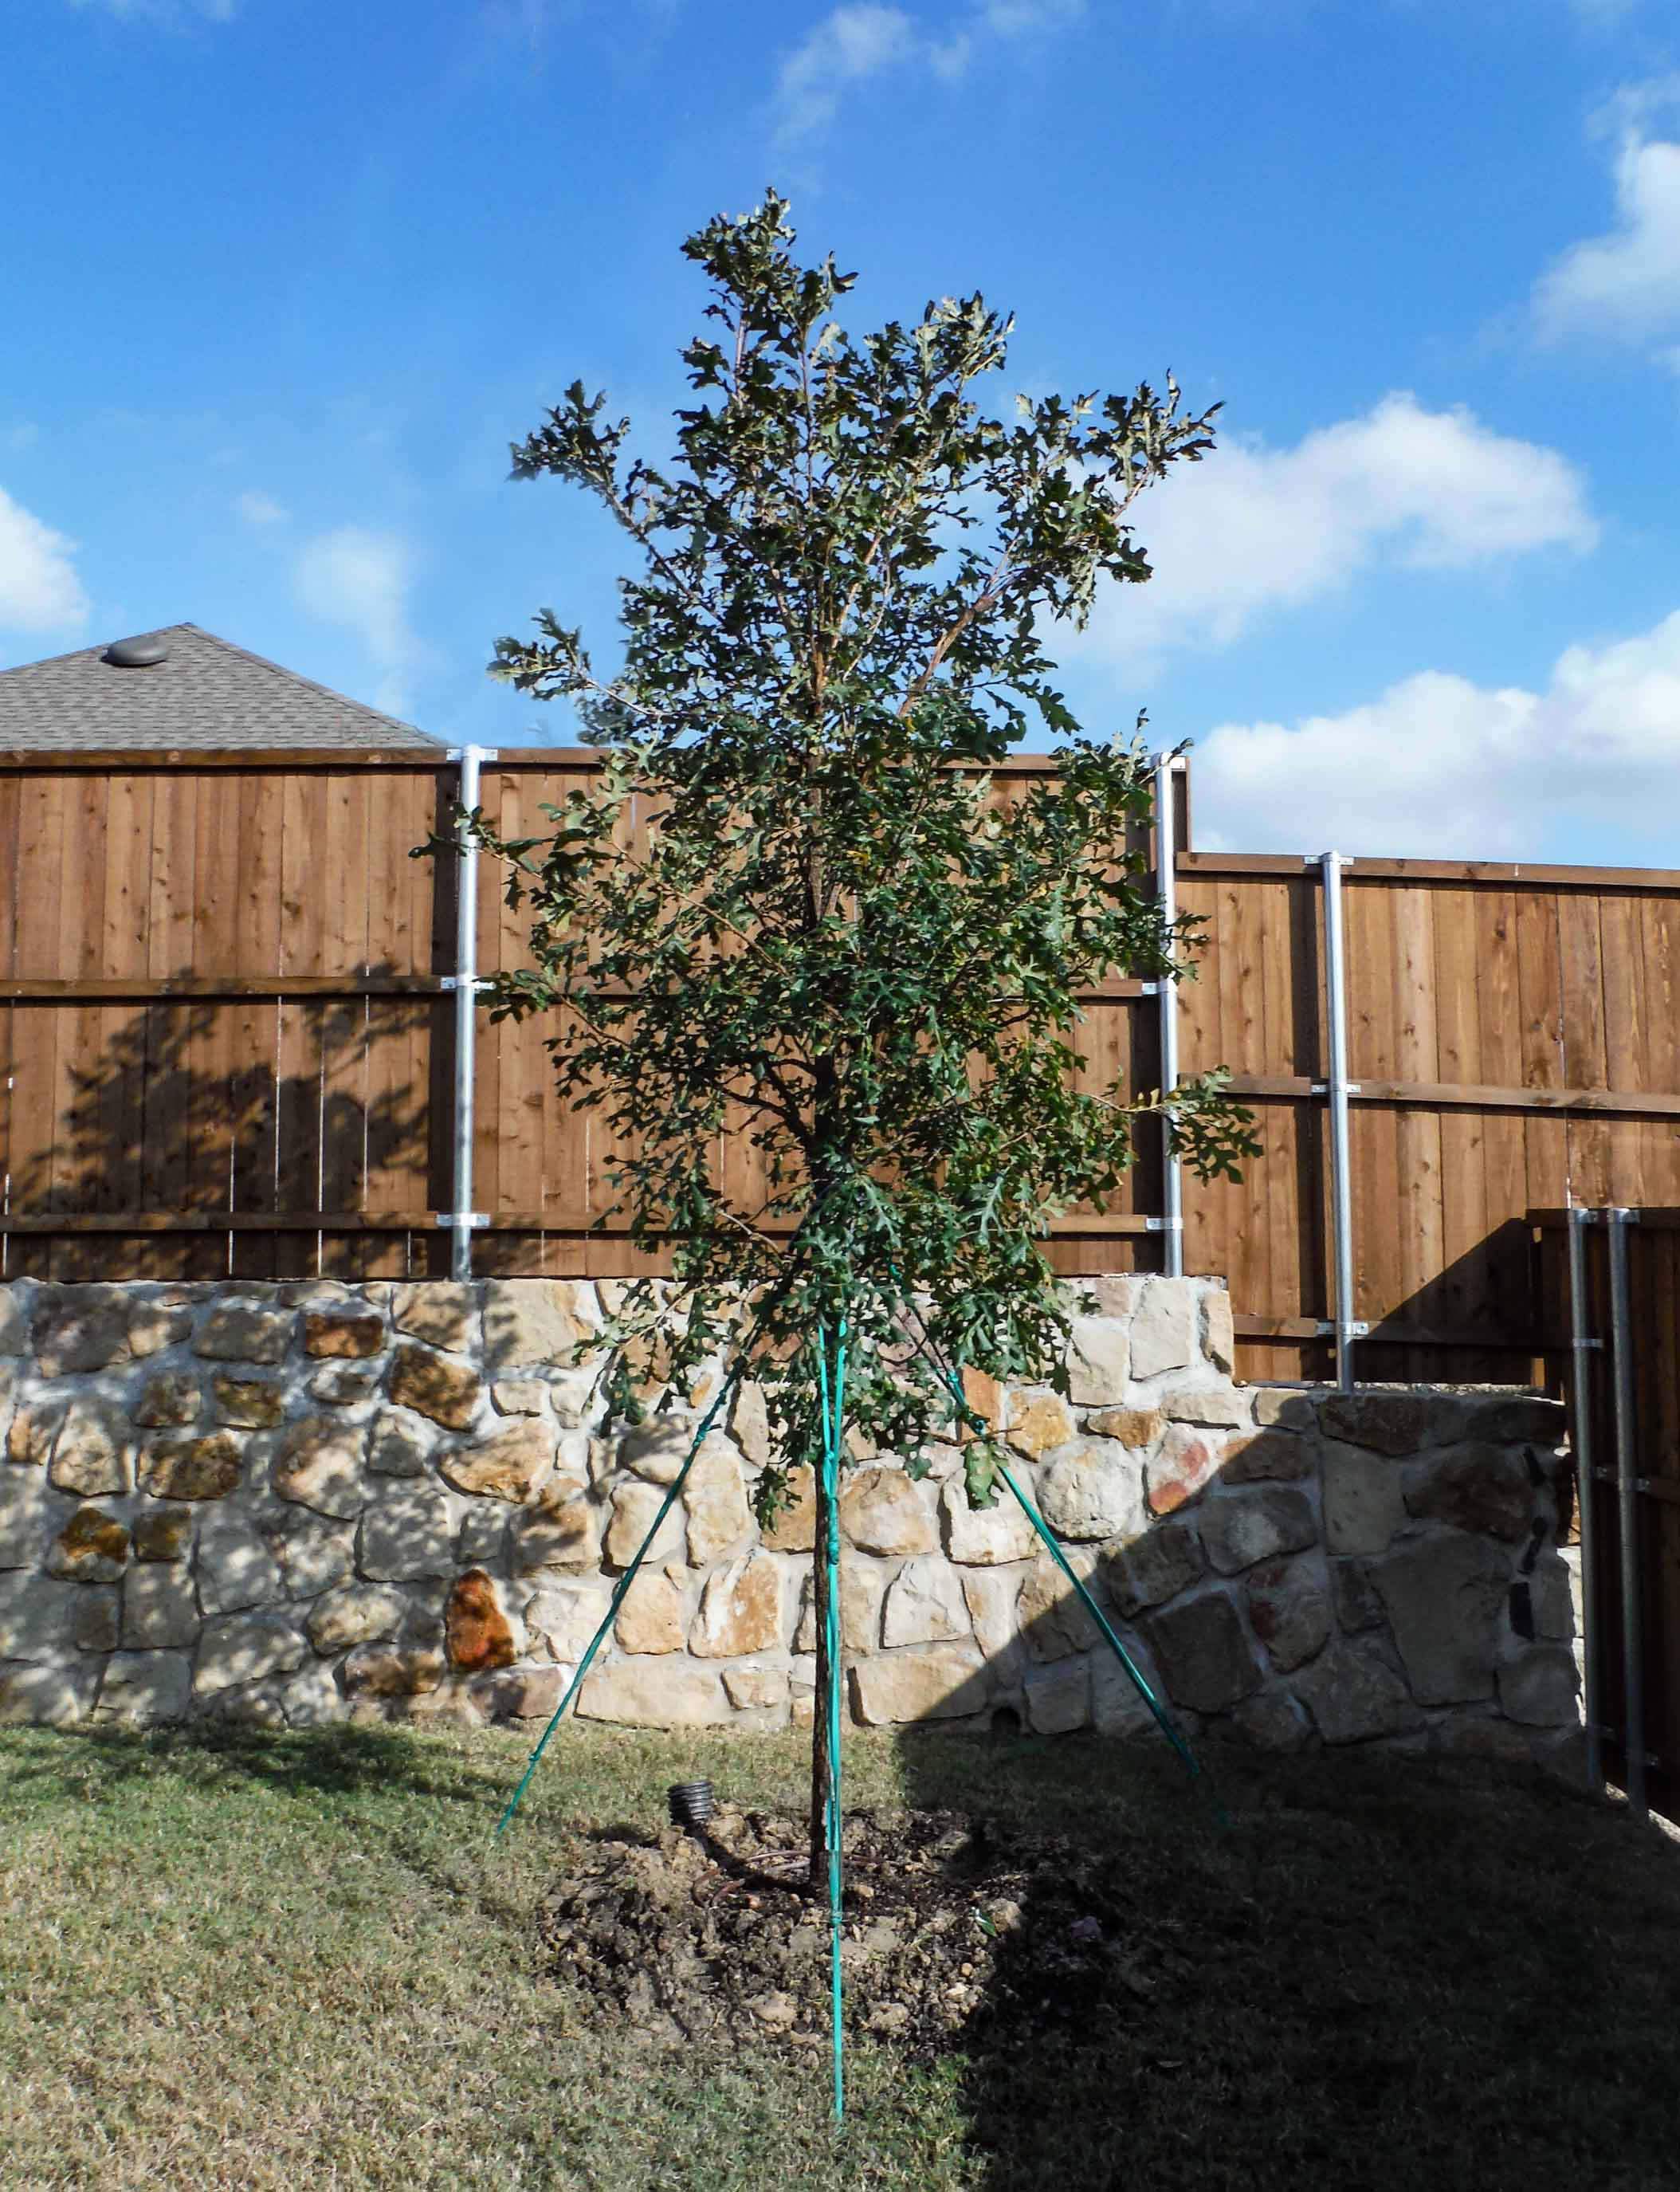 Bur Oak tree installed in a backyard by Treeland Nursery.